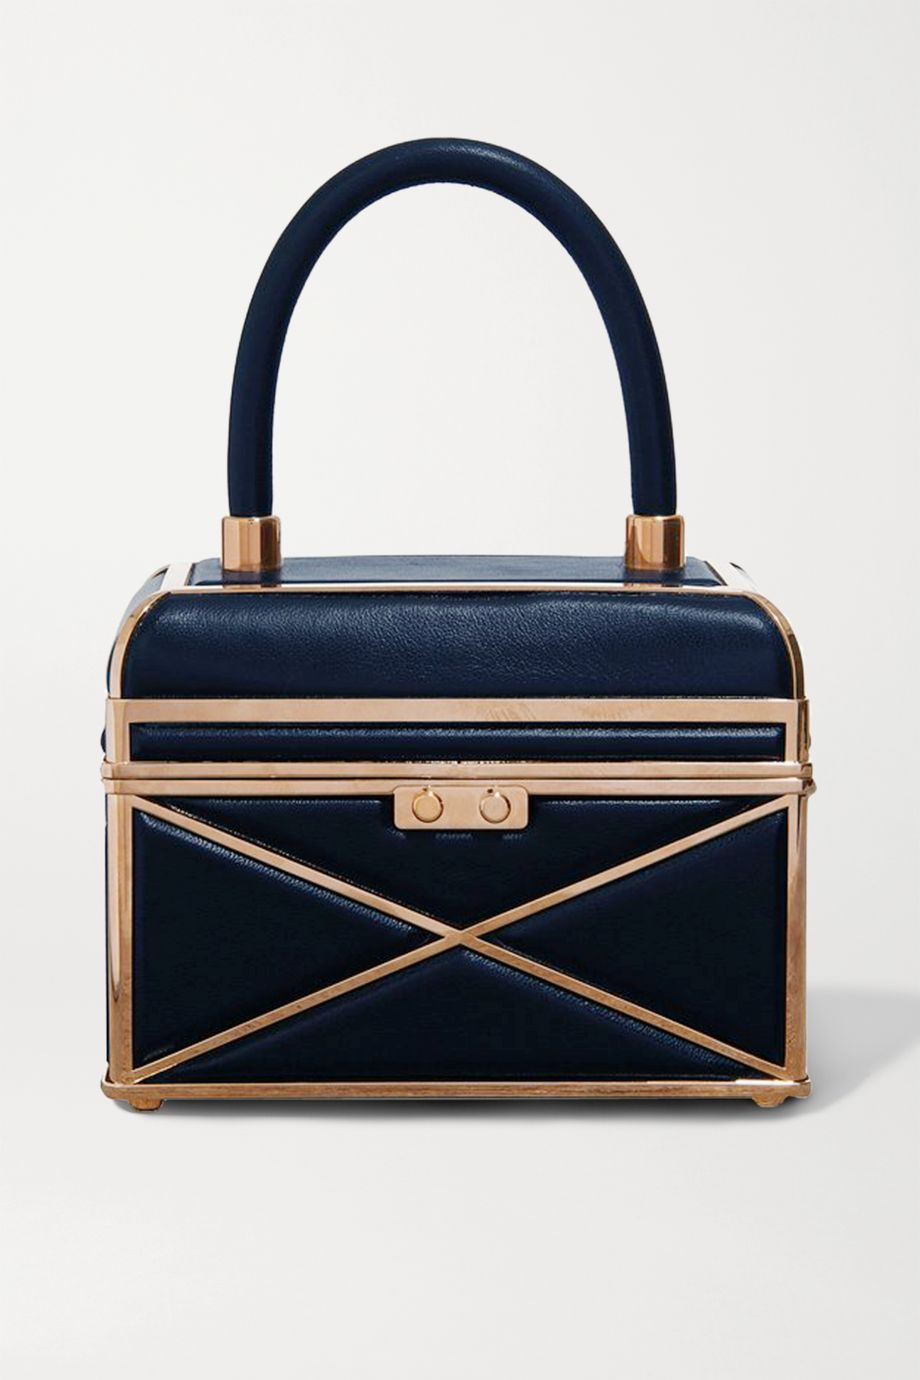 Gabriela Hearst Virginia leather tote